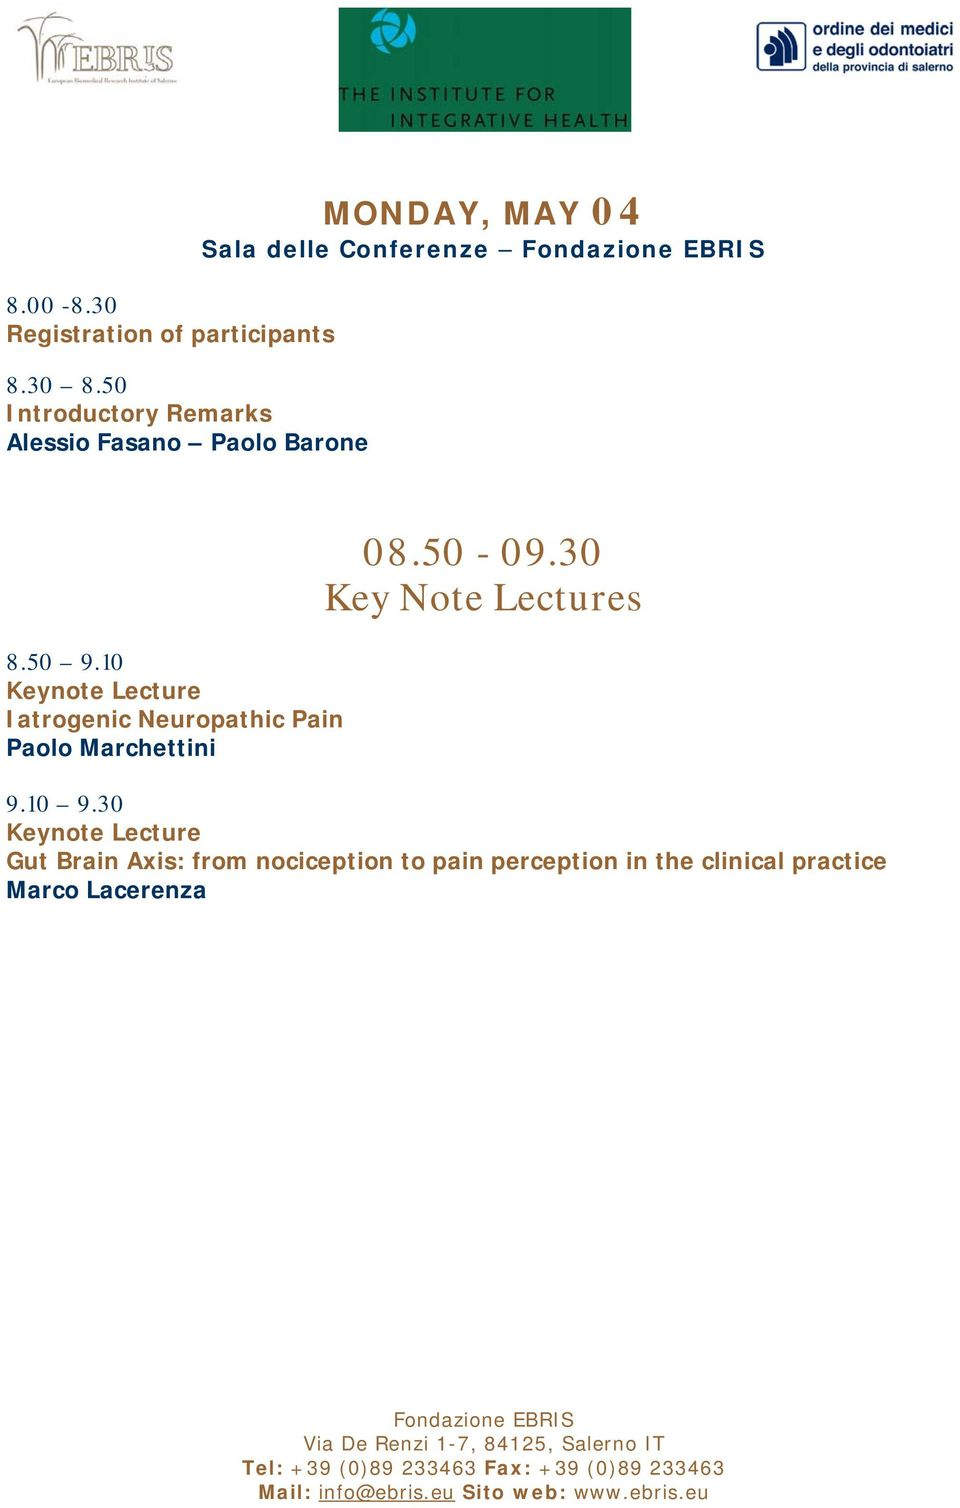 8.50 9.10 Keynote Lecture Iatrogenic Neuropathic Pain Paolo Marchettini 08.50-09.